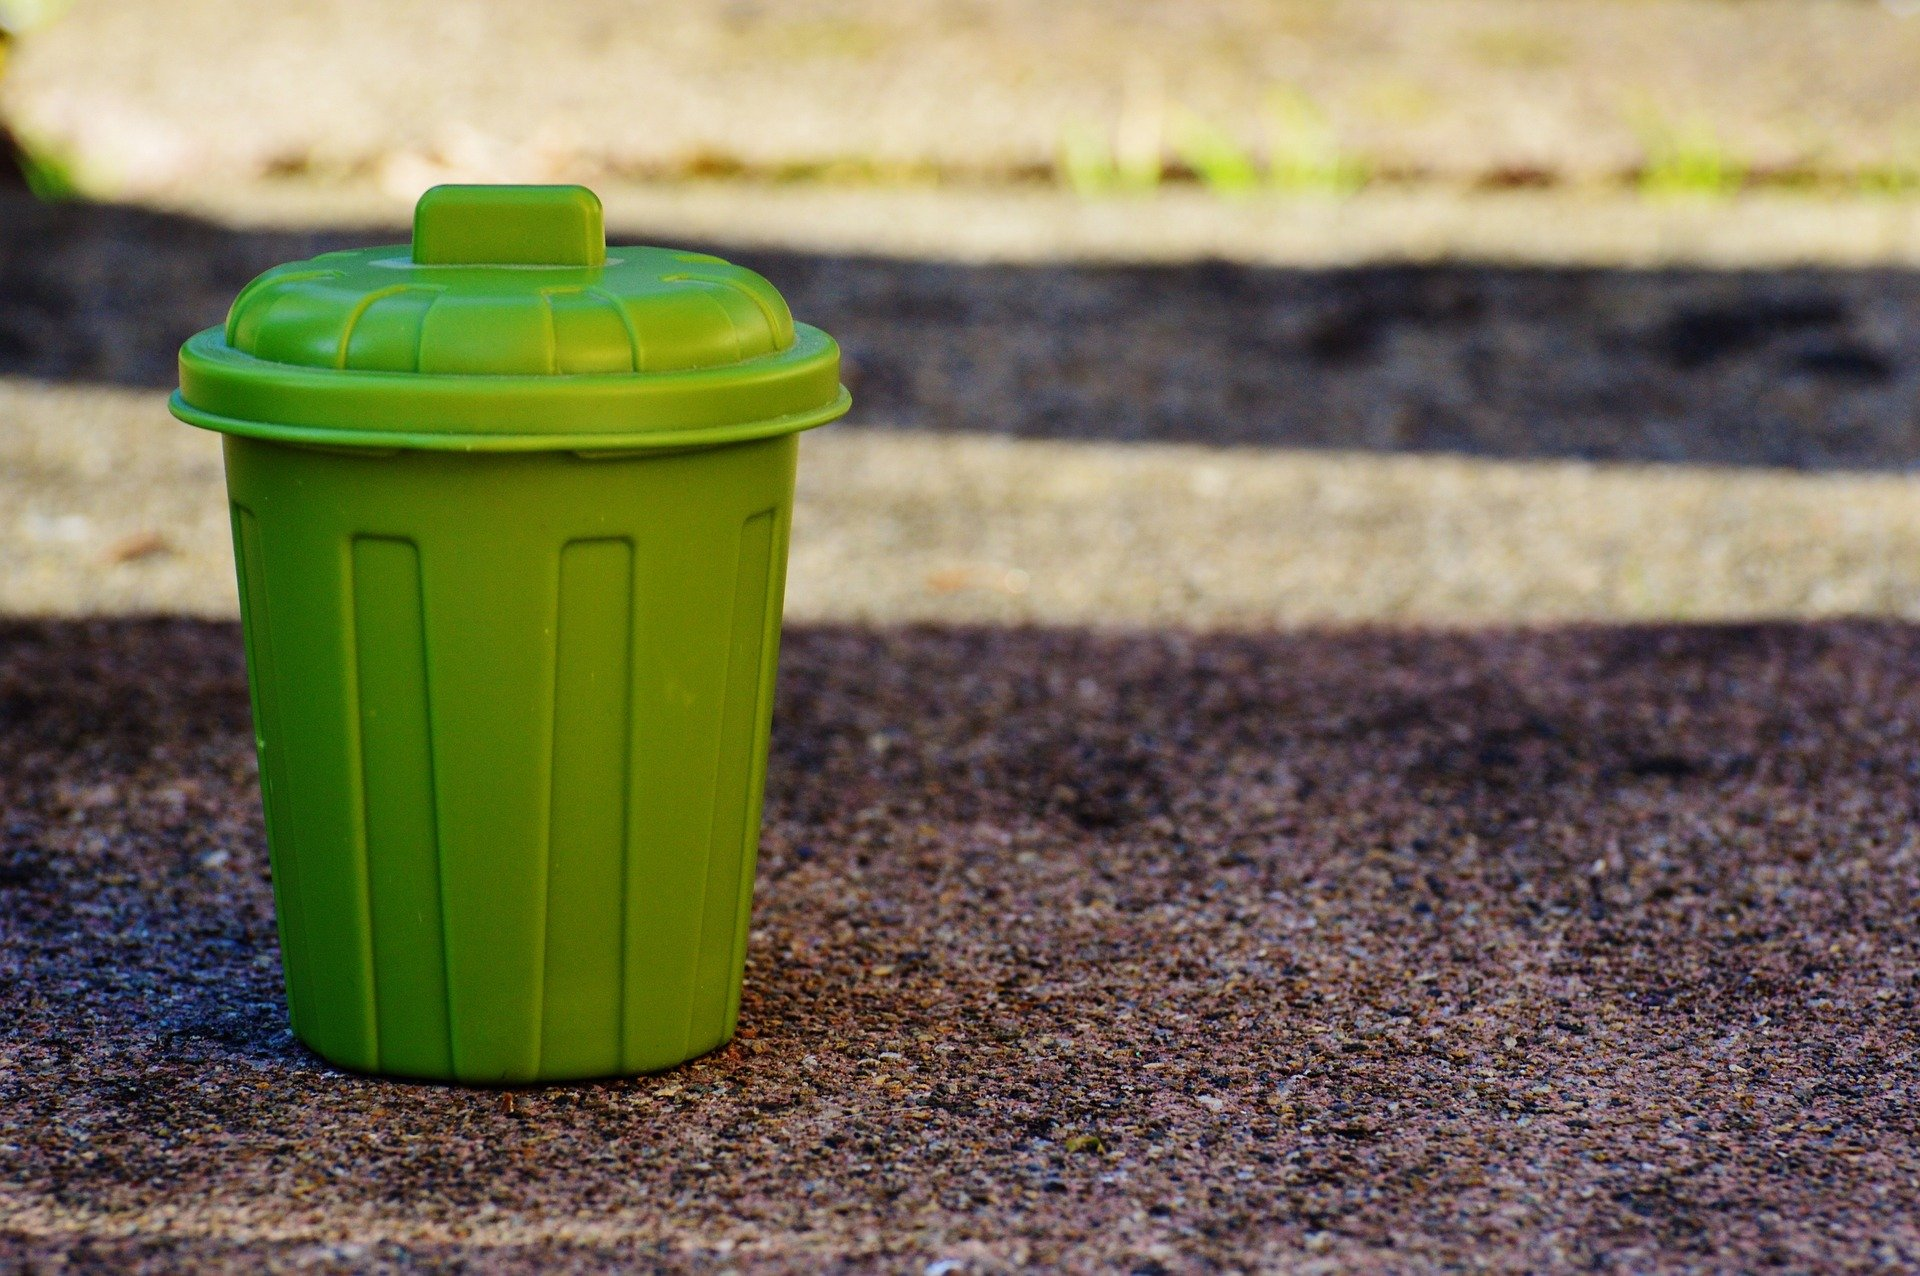 garbage-can-1111448_1920